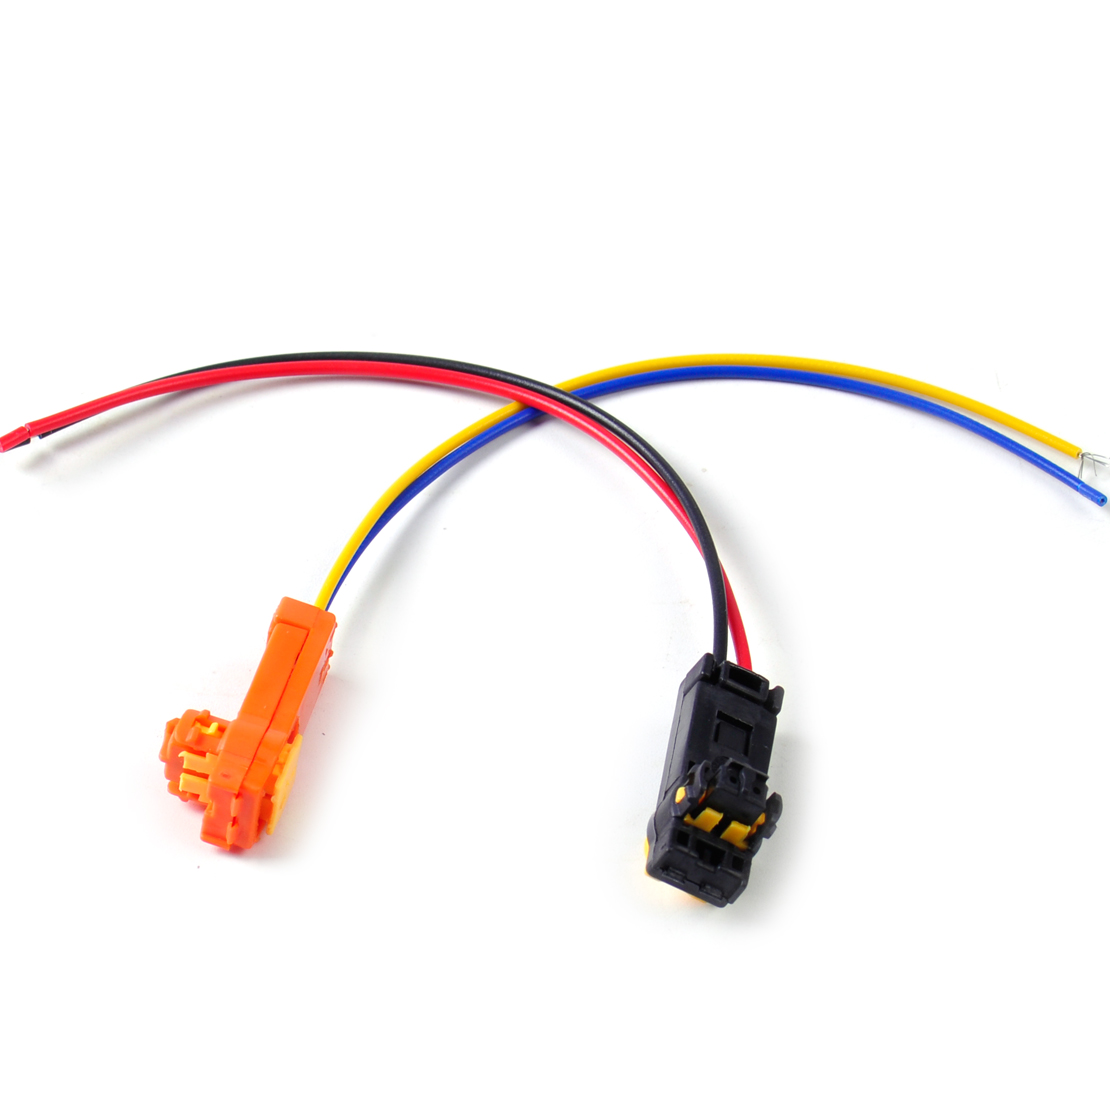 1pair security airbag connector plugs clockspring wires for mazda rh ebay  com Air Bag Recall Air